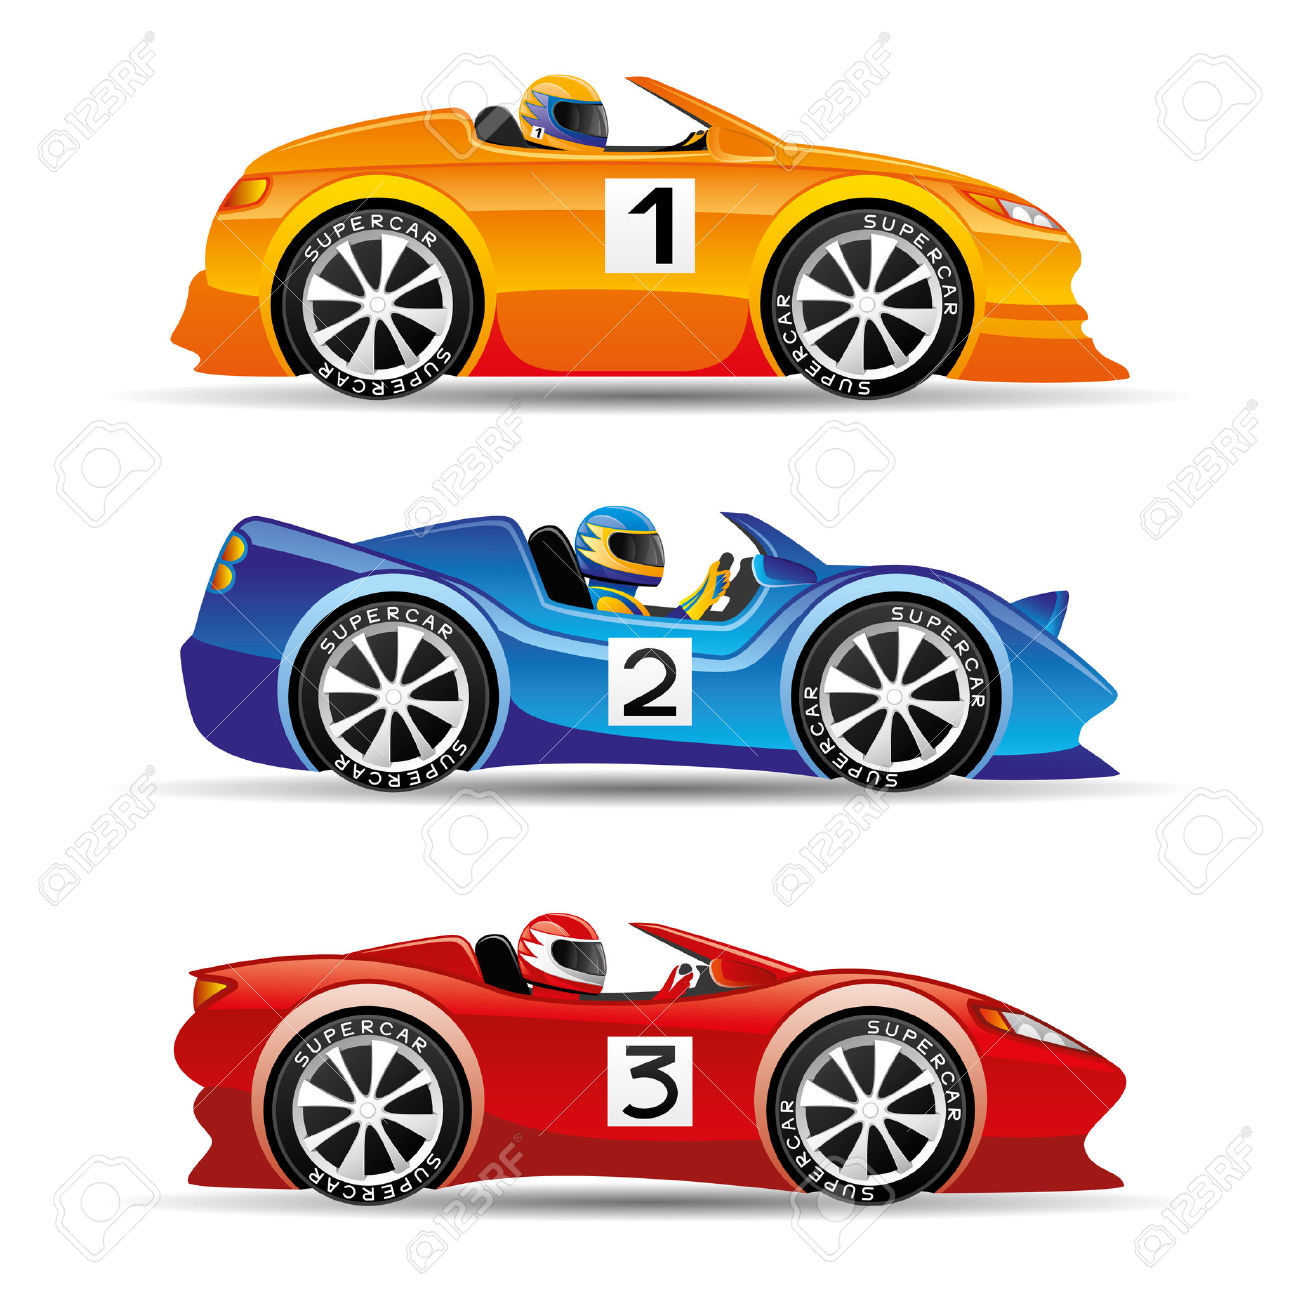 Race cars clipart 2 » Clipart Station clip royalty free stock